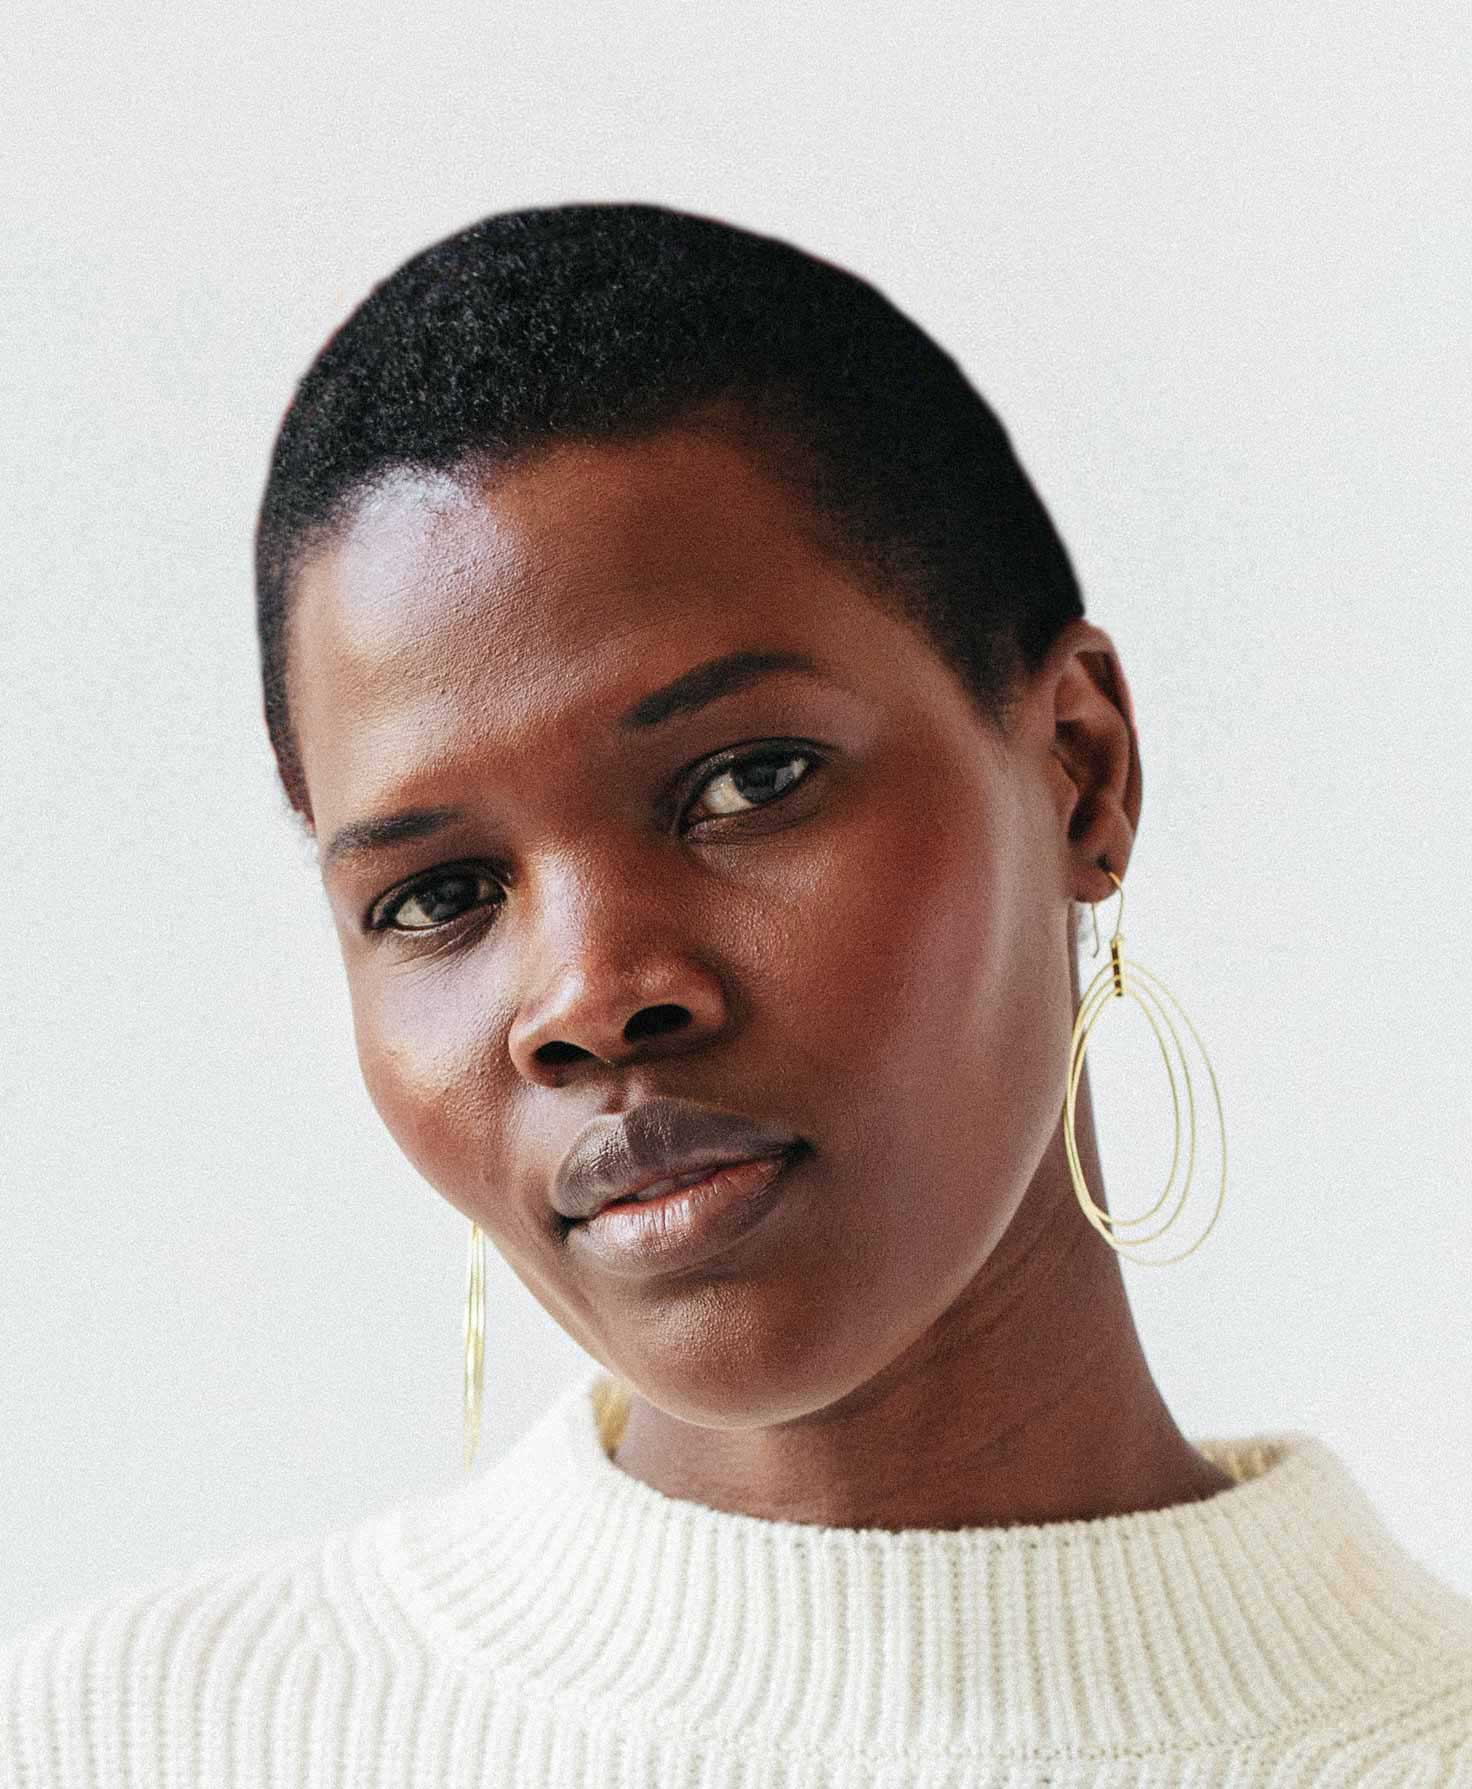 A model wears the large Satellite Earrings, which hang down several inches and sparkle in the light. Paired with her white turtleneck sweater, they add some modern shine to her look.